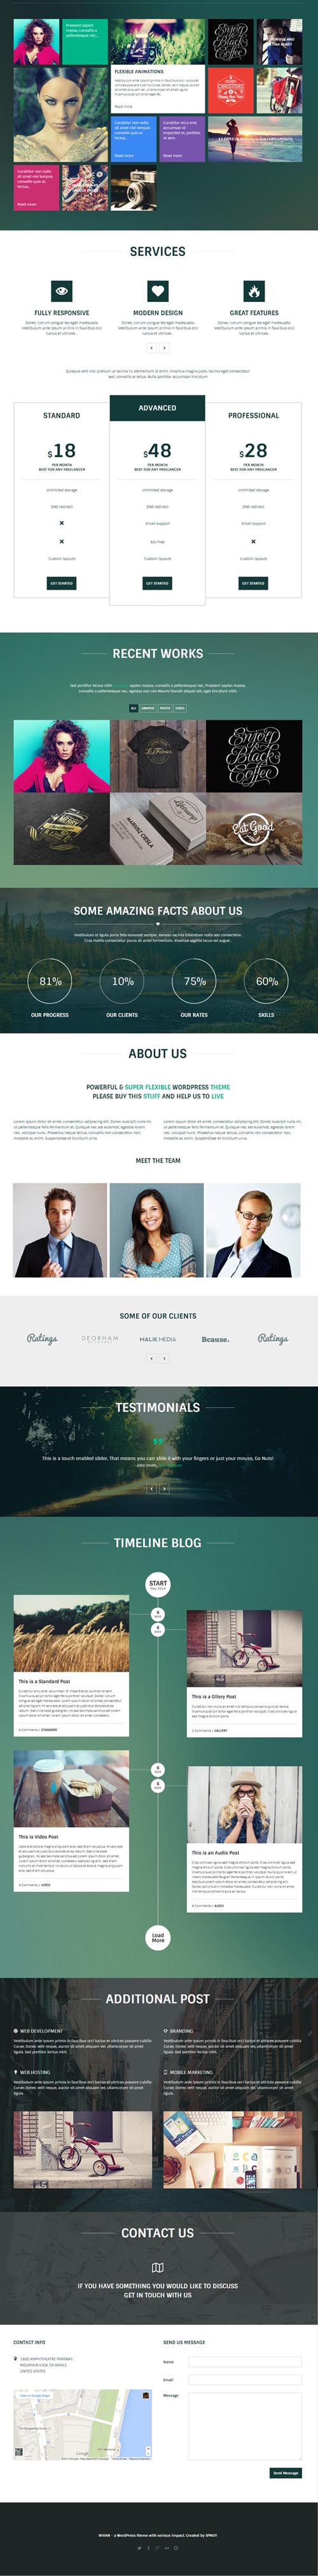 Nivan - One Page/Multi Page WordPress Theme